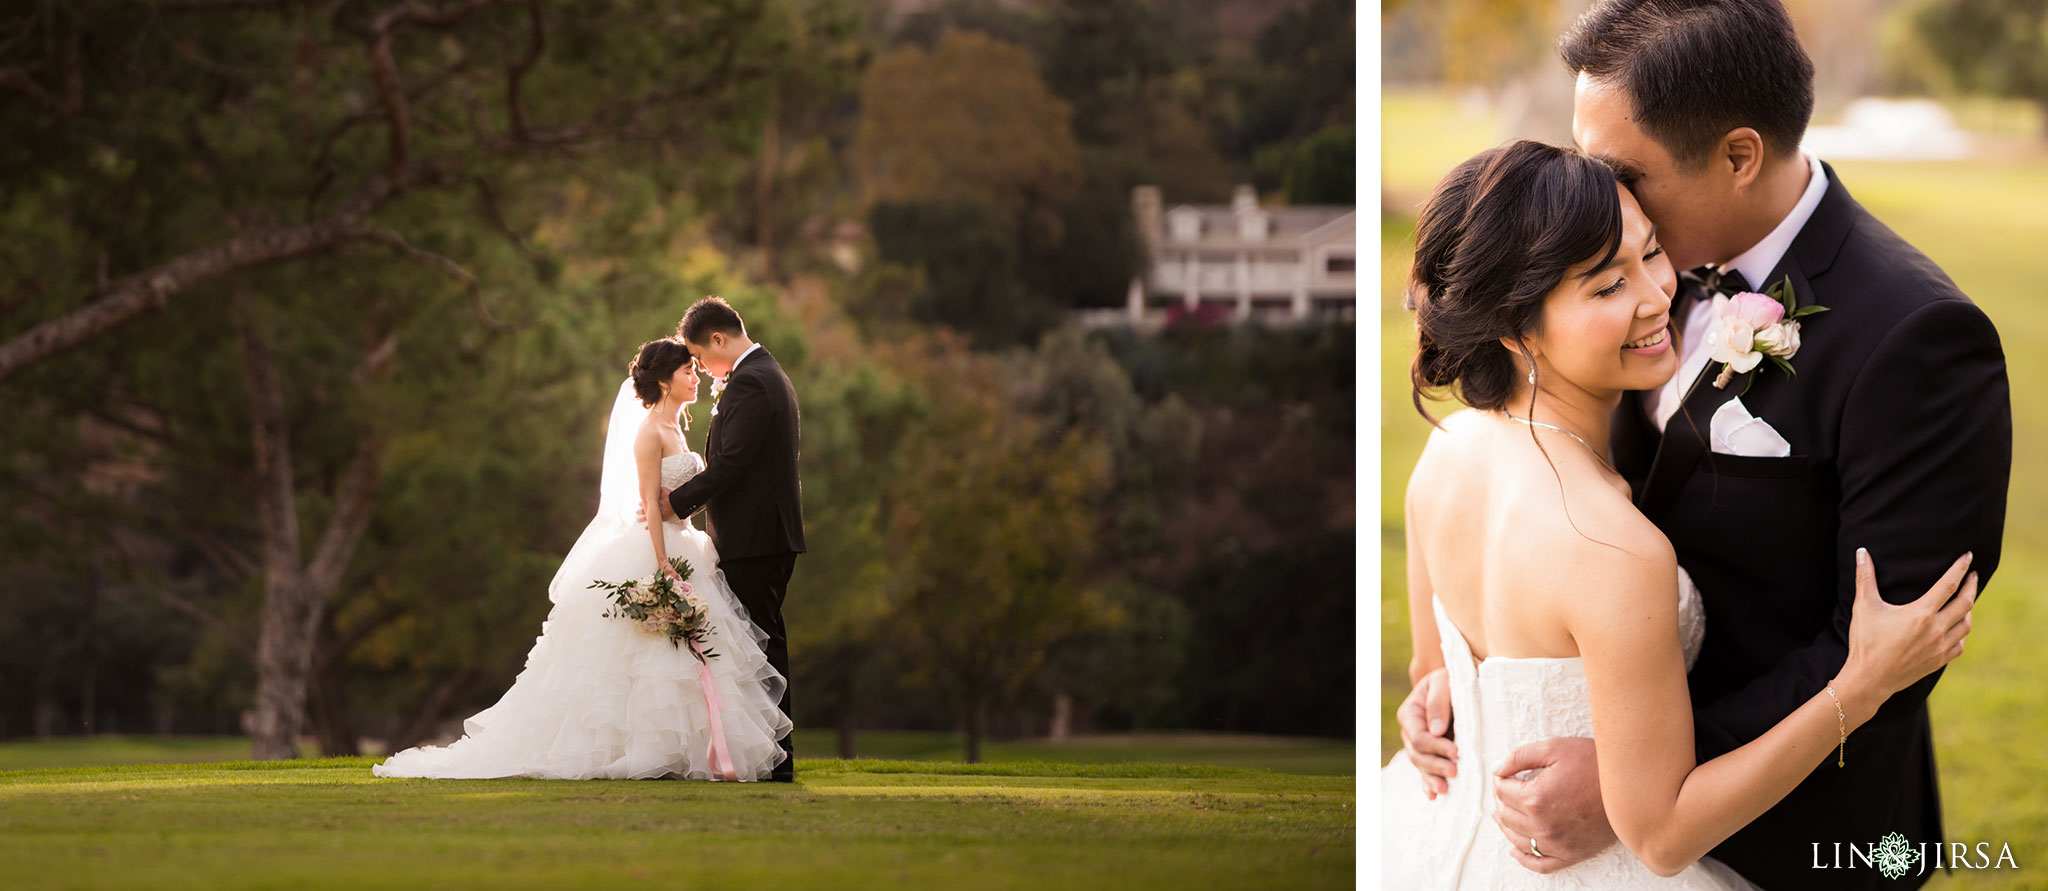 27 brookside golf club pasadena wedding couple photography